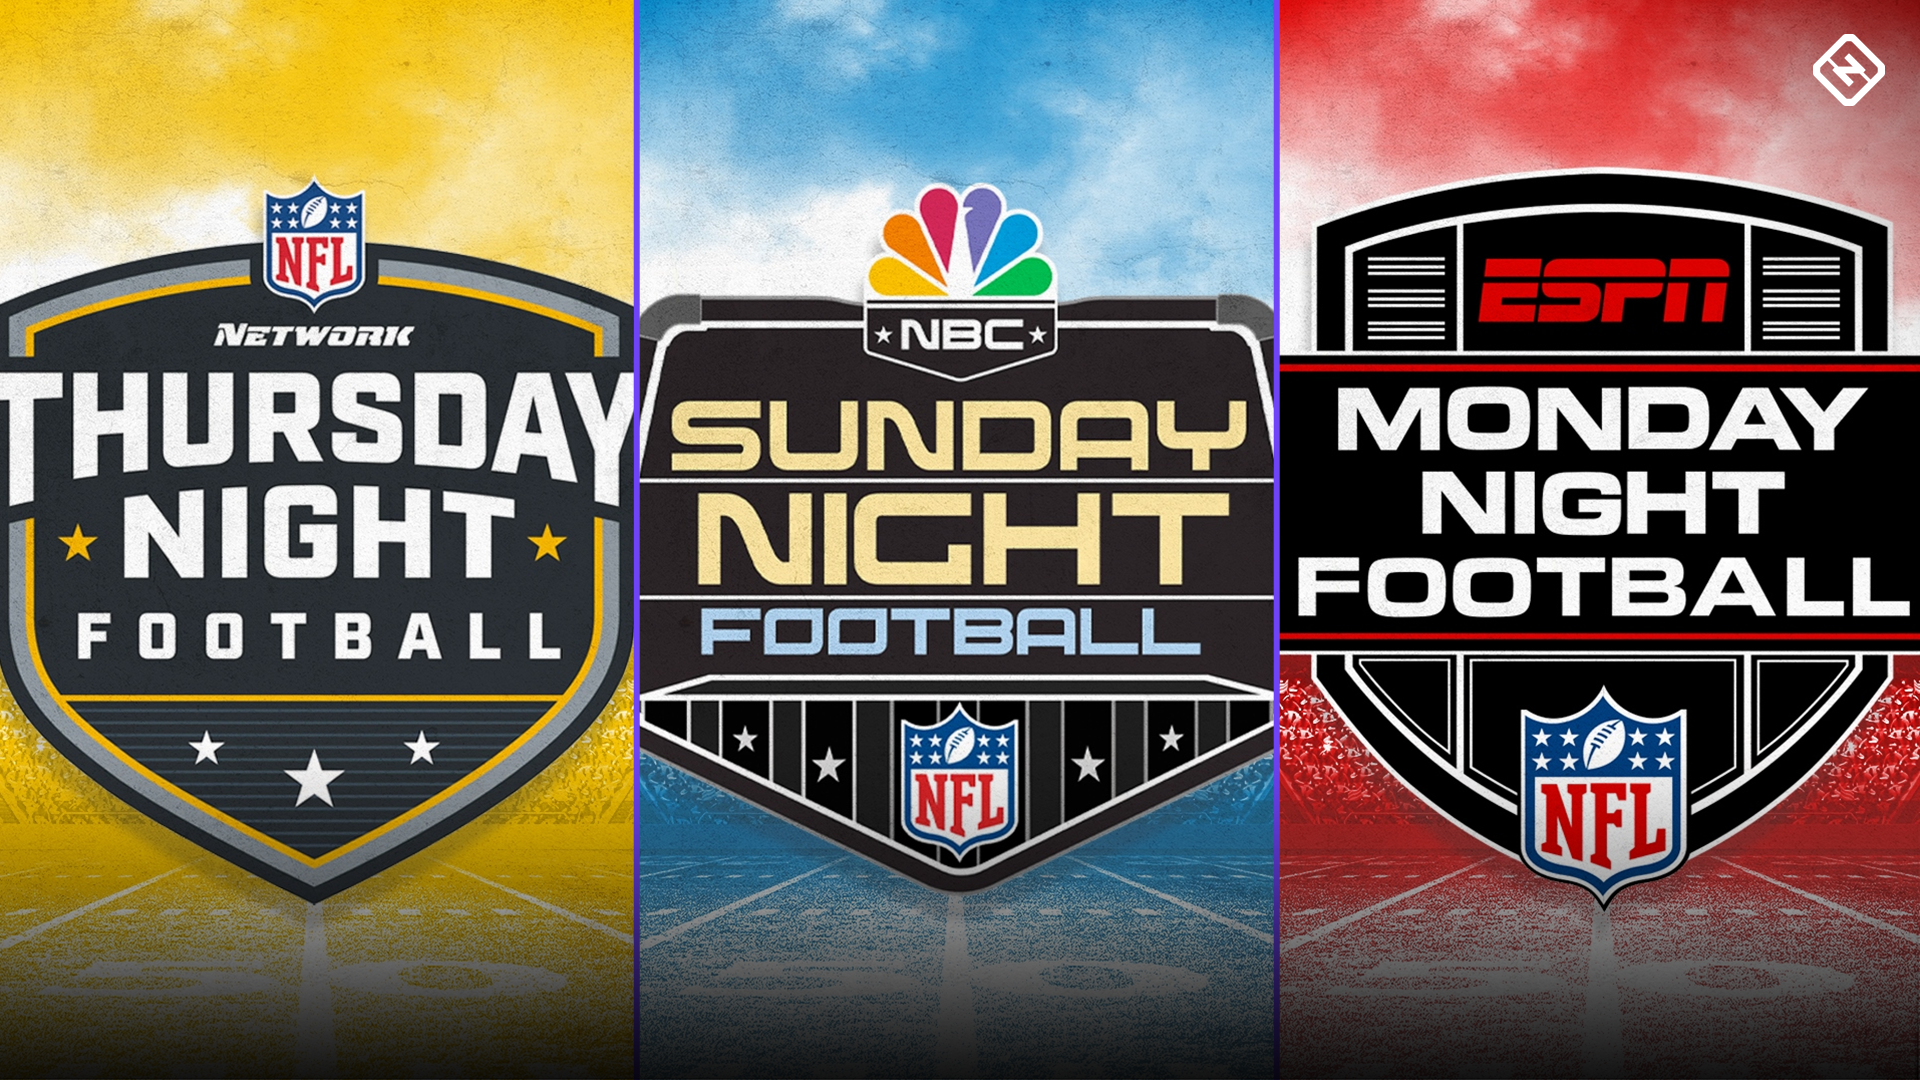 Nfl Schedule 2020 Sunday Monday Thursday Night Football Schedules Tv Channels For Prime Time Games Sporting News